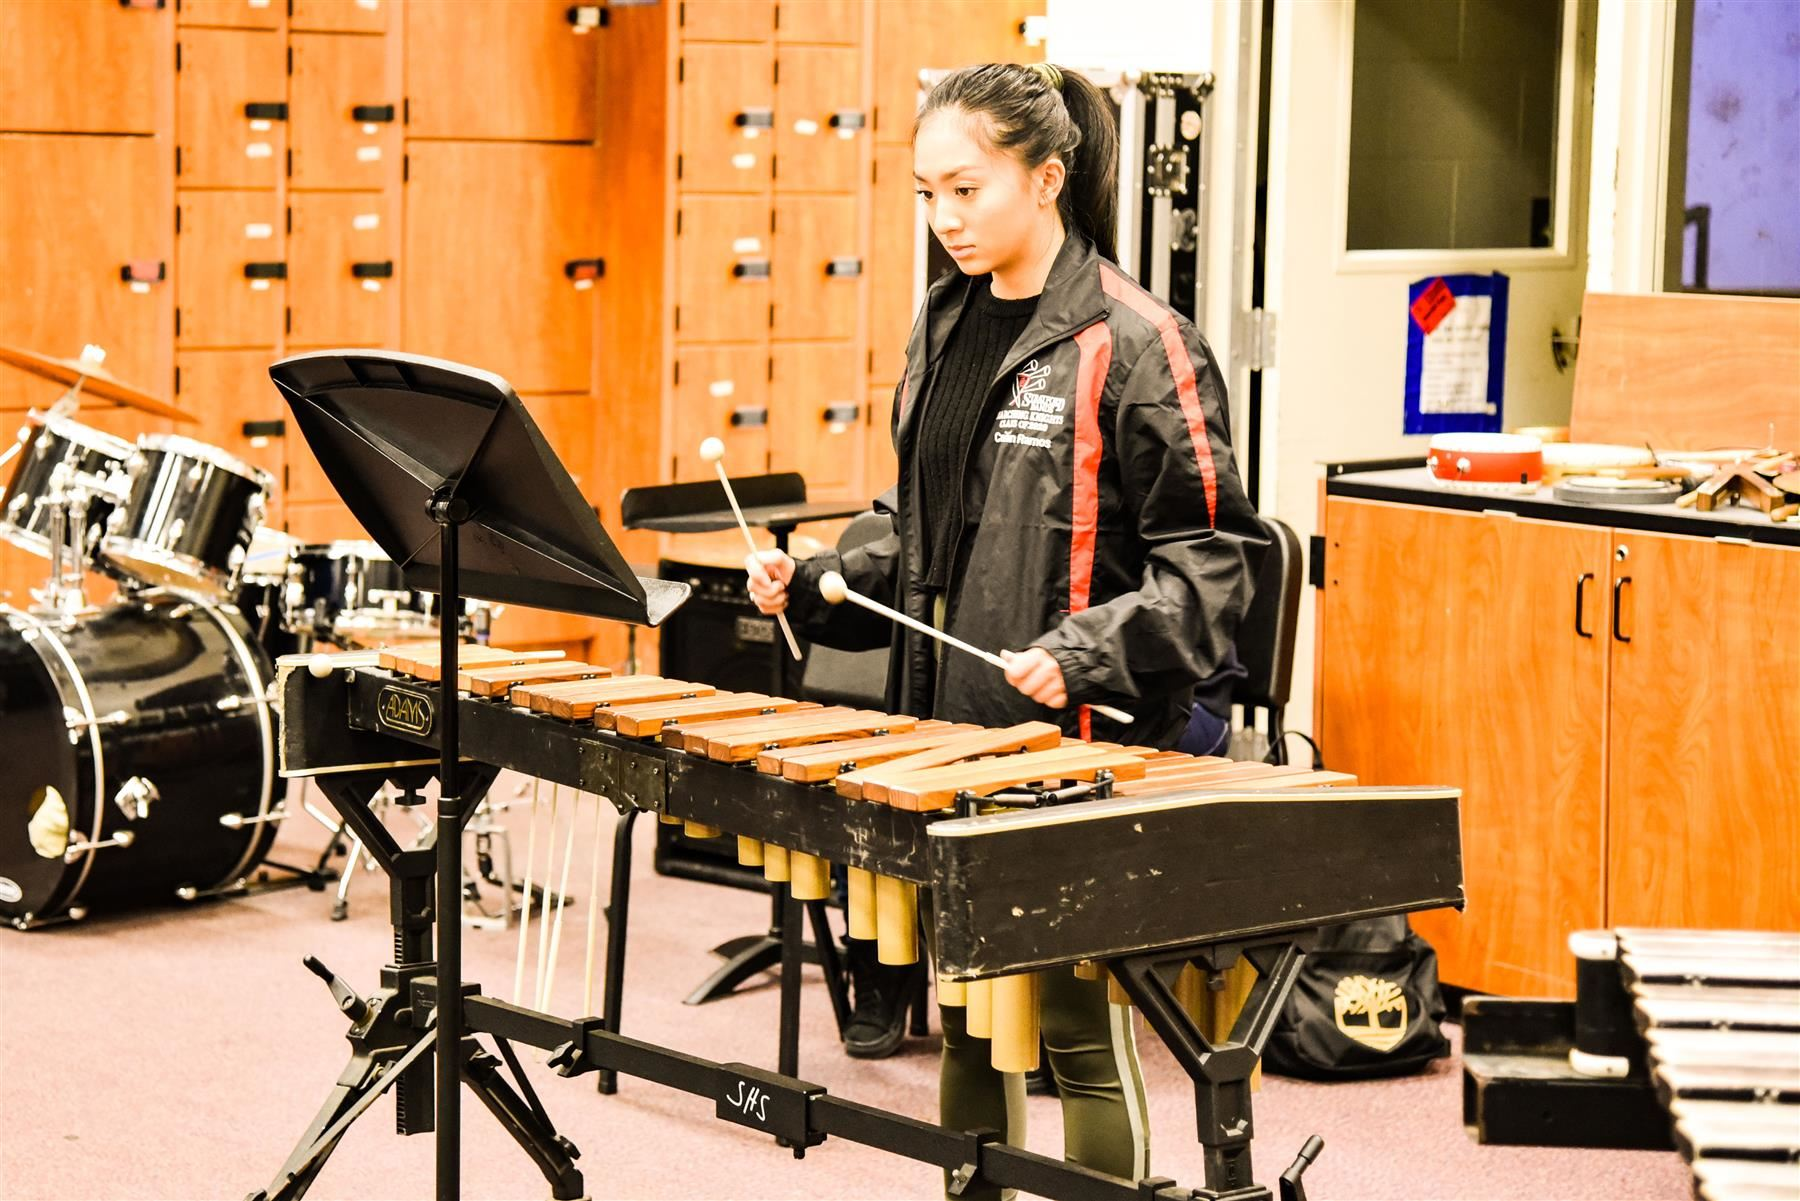 Stratford High's wind orchestra has been selected to perform in a national concert in March